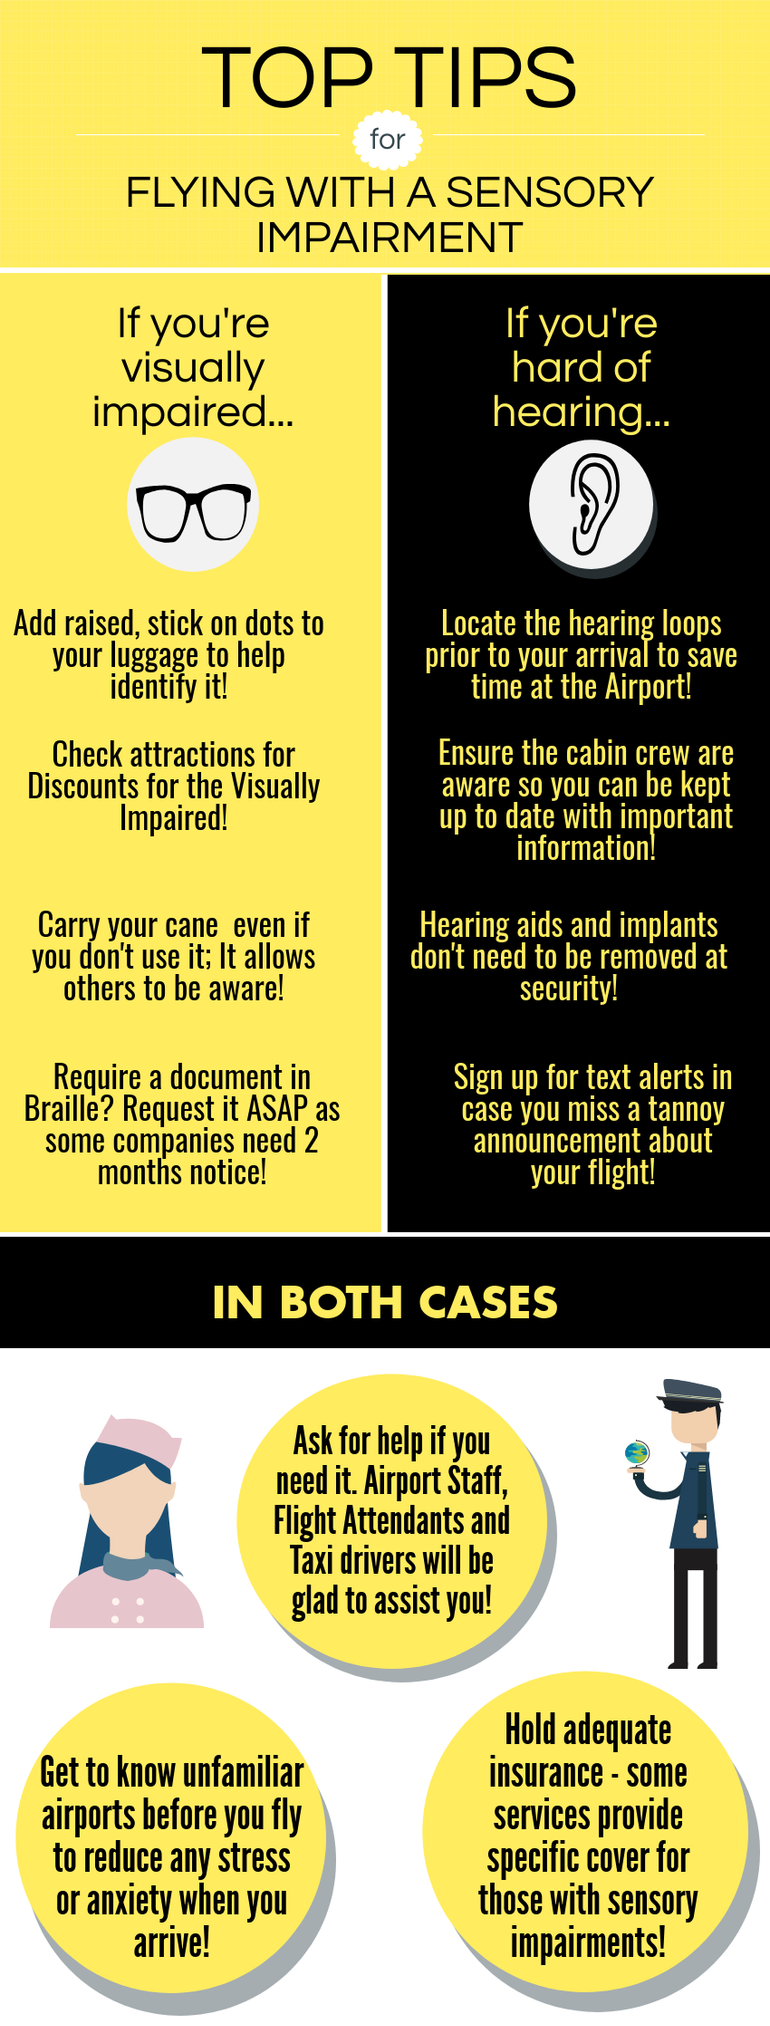 Tip for those travelling with sensory impairment; let staff know so they can assist you if needed!